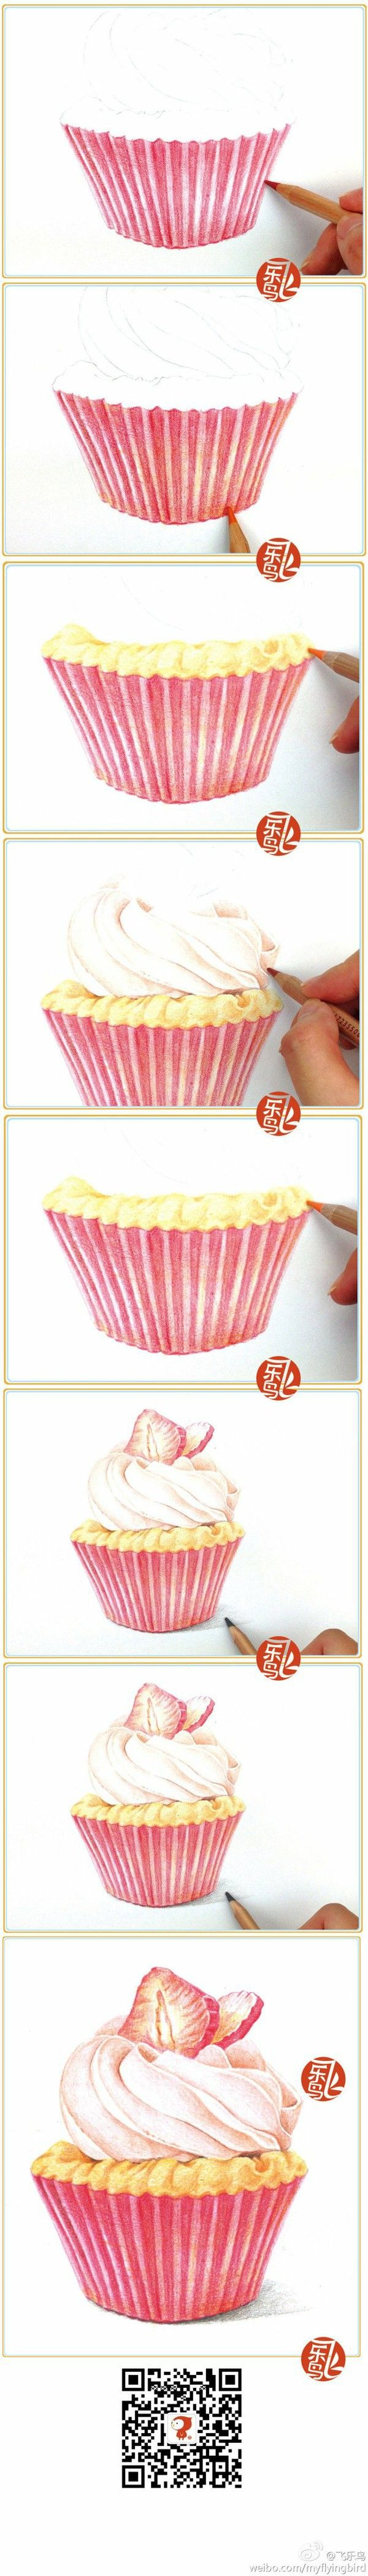 Drawing A Cupcake In Colored Pencil Color Pencils Umeni Kresby